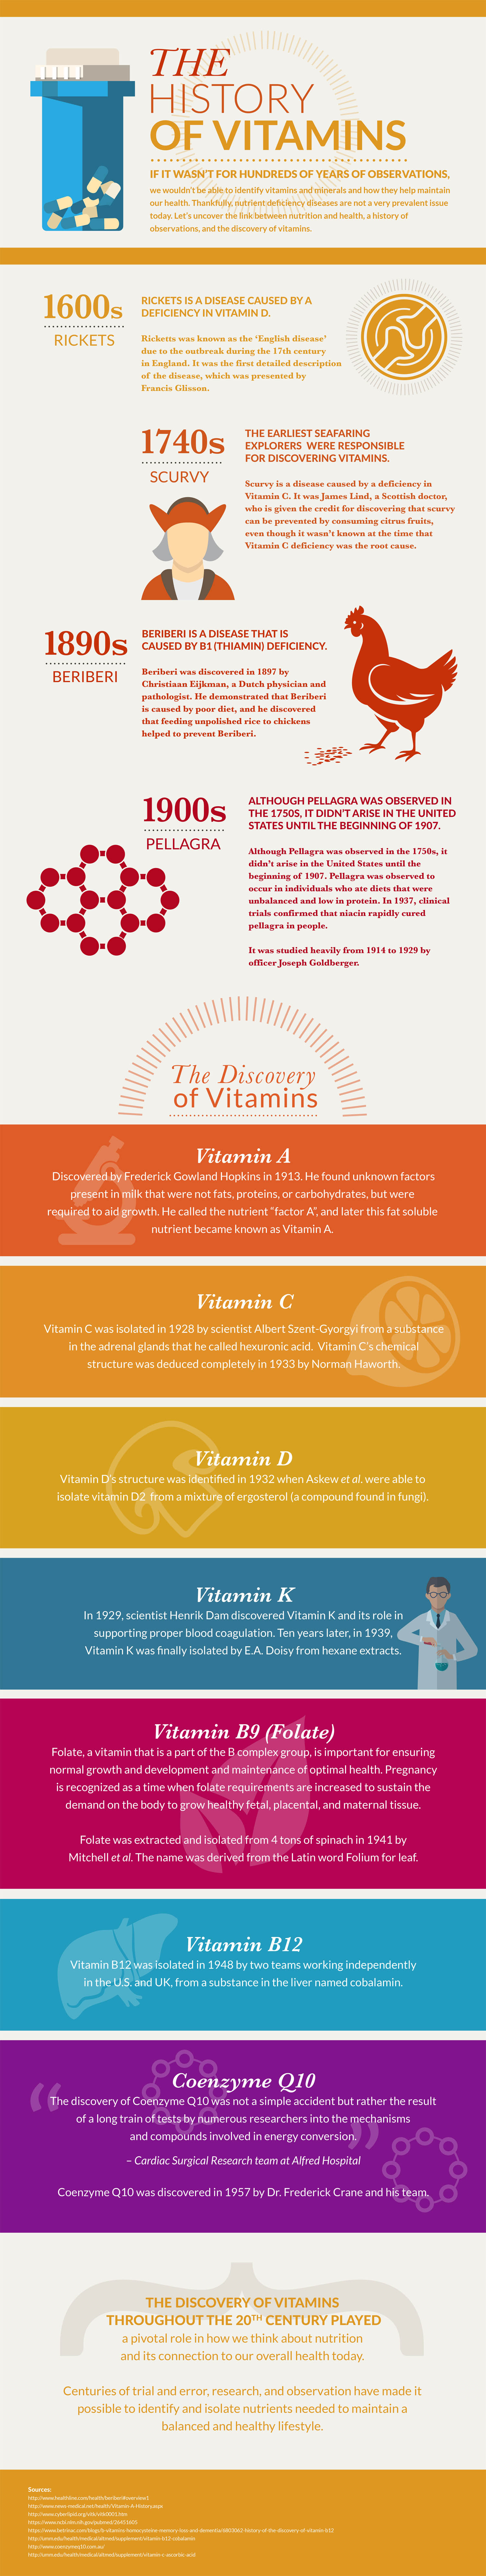 A History of Vitamin Discovery Throughout the Ages